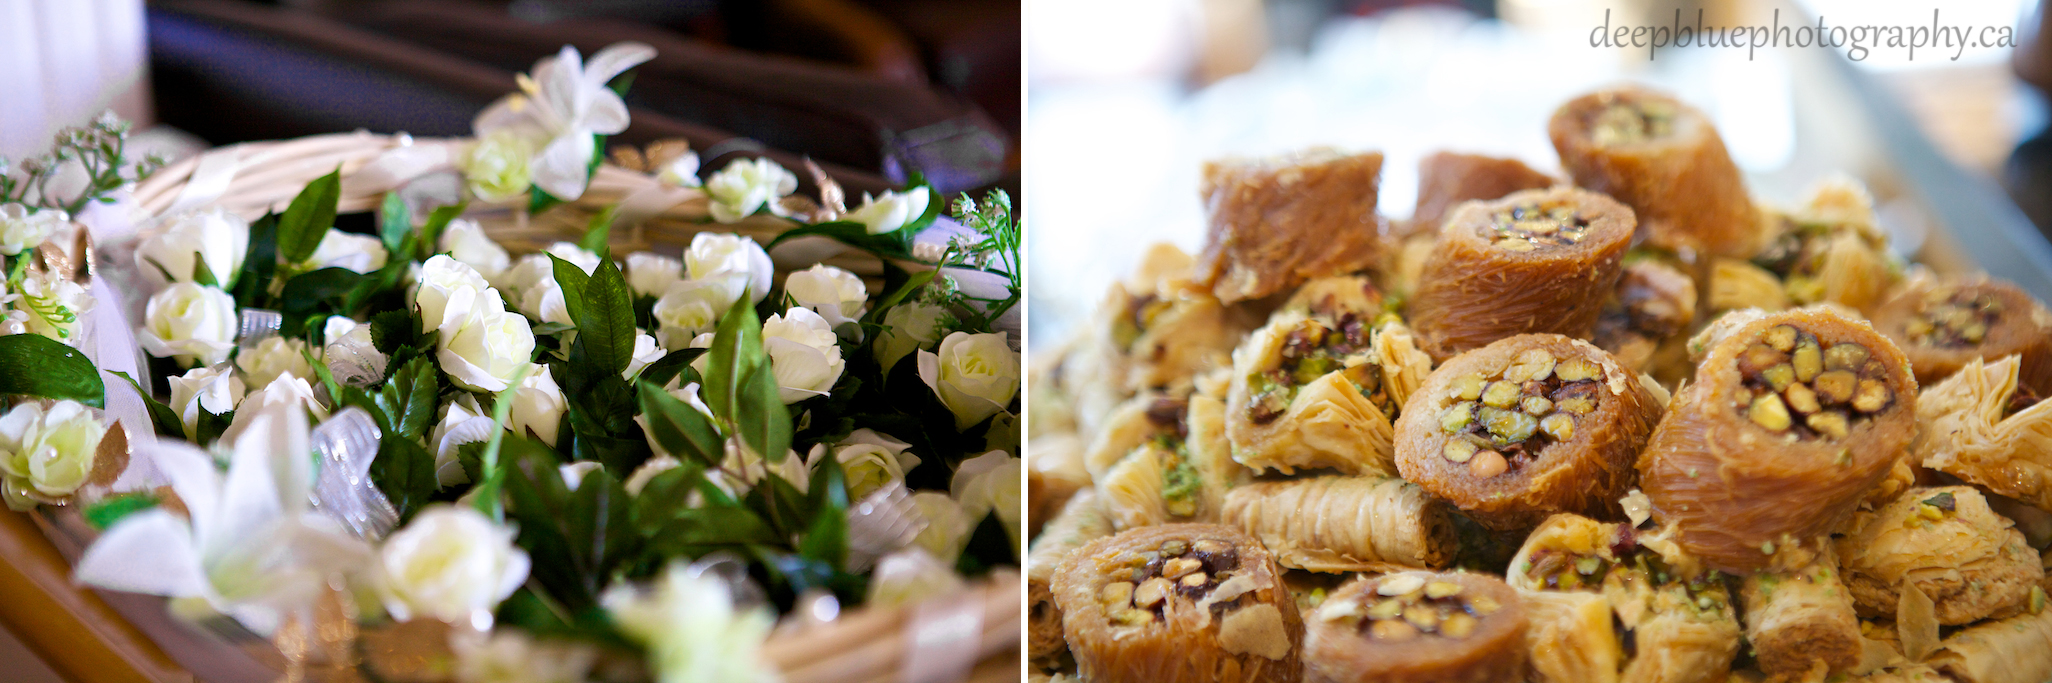 Detail Photo of Food and Flowers